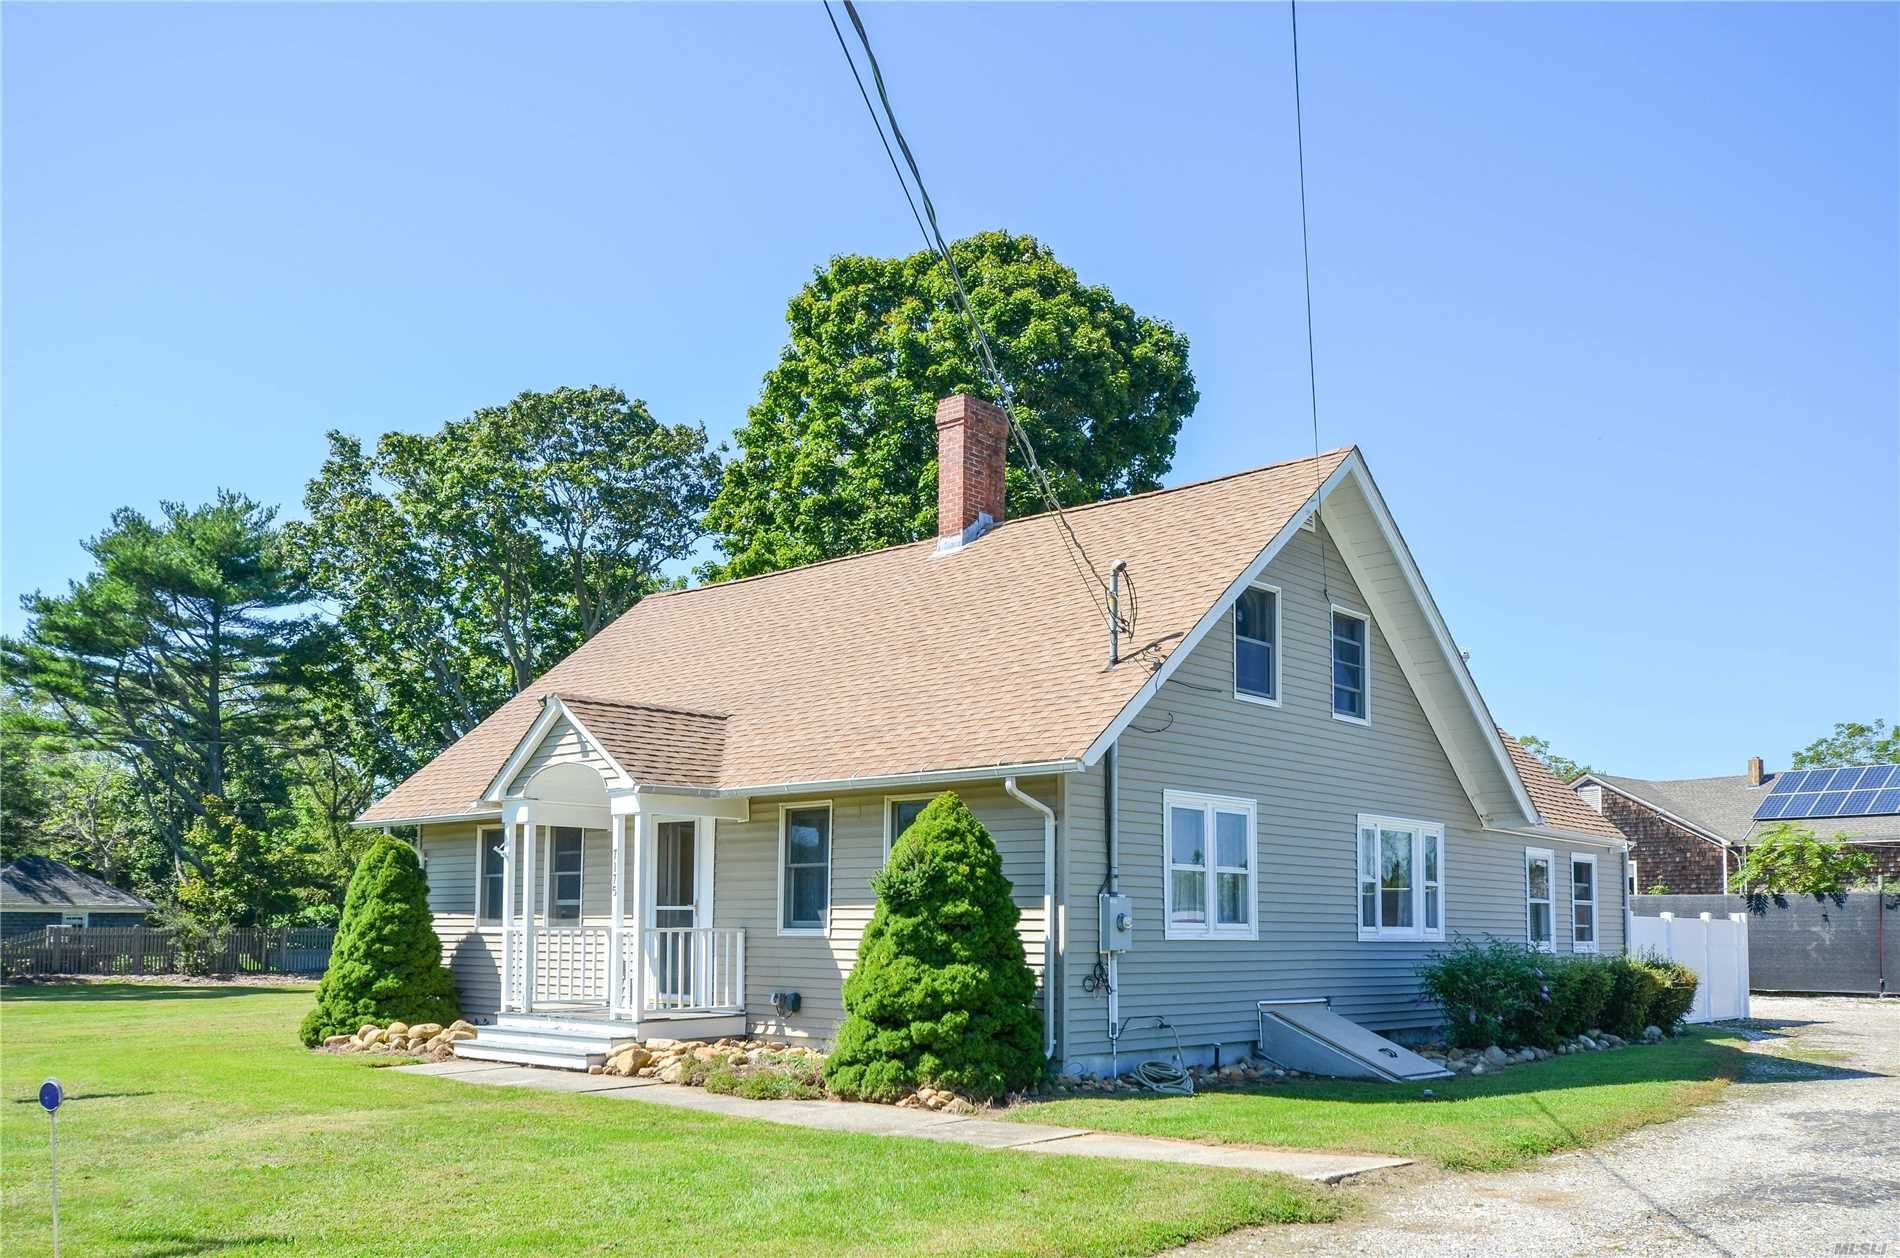 Country Farmhouse Cape. Loaded With An Original Working Farmhouse Flow. A Large Mudroom Leading To Washroom And Laundry. Large Eat In Kitchen. Hardwood Floors Throughout, Cast Iron Radiators. There Is A Large Bedroom On The 2nd Floor And A Large Bedroom On The 1st Floor.